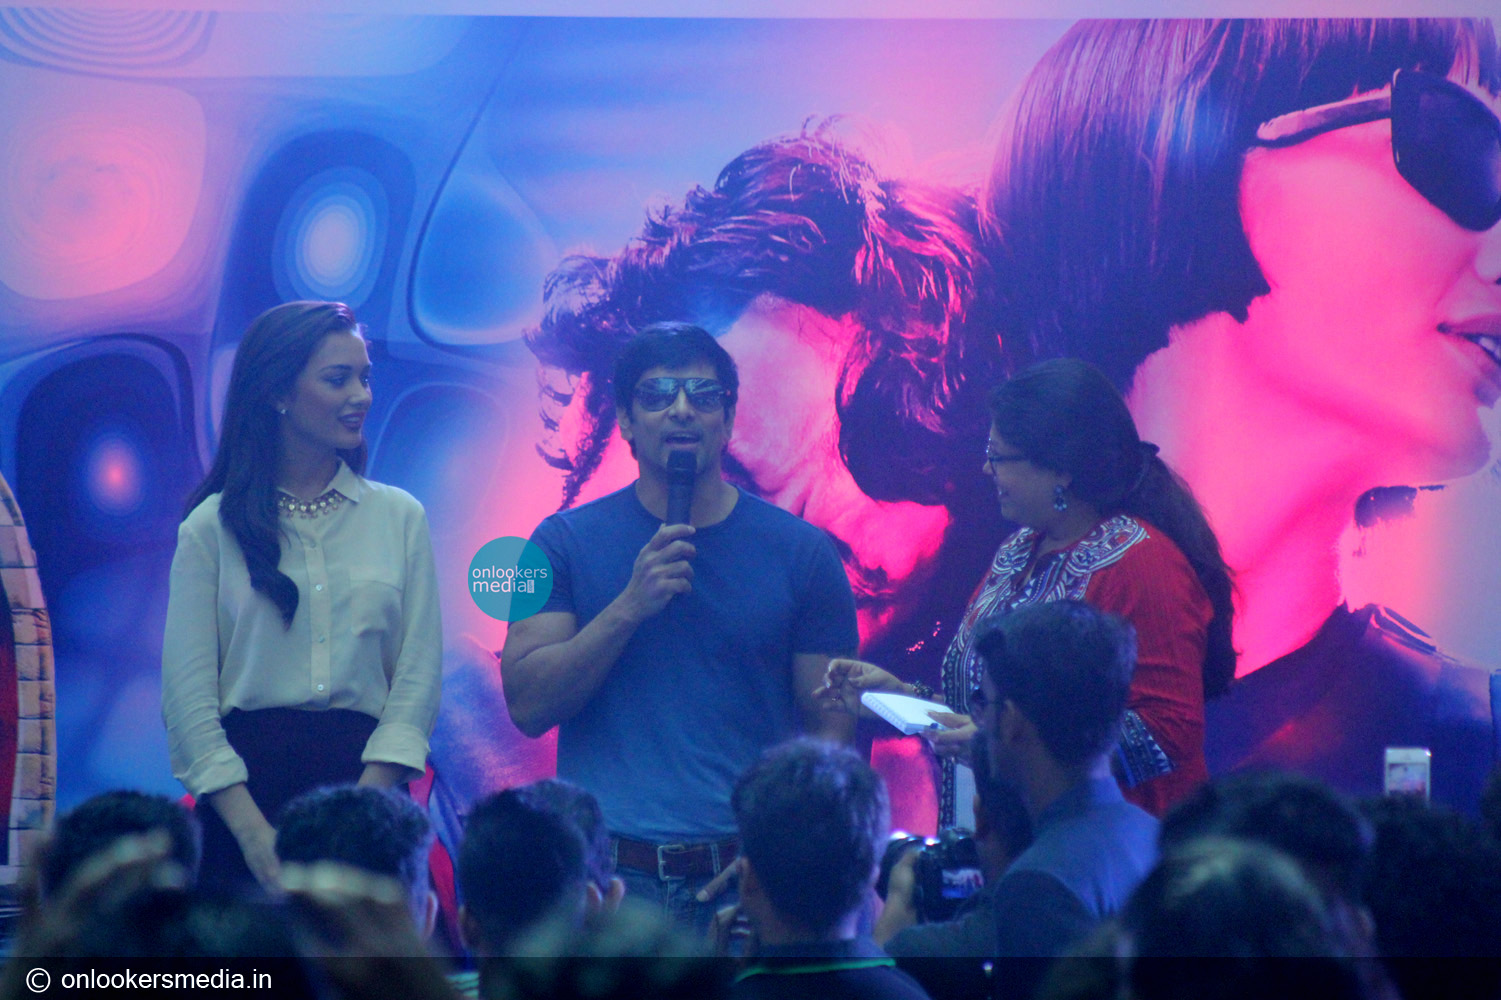 http://onlookersmedia.in/wp-content/uploads/2015/01/Vikram-at-Lulu-mall-for-I-promotional-event-Amy-Jackson-Onlookers-Media-15.jpg